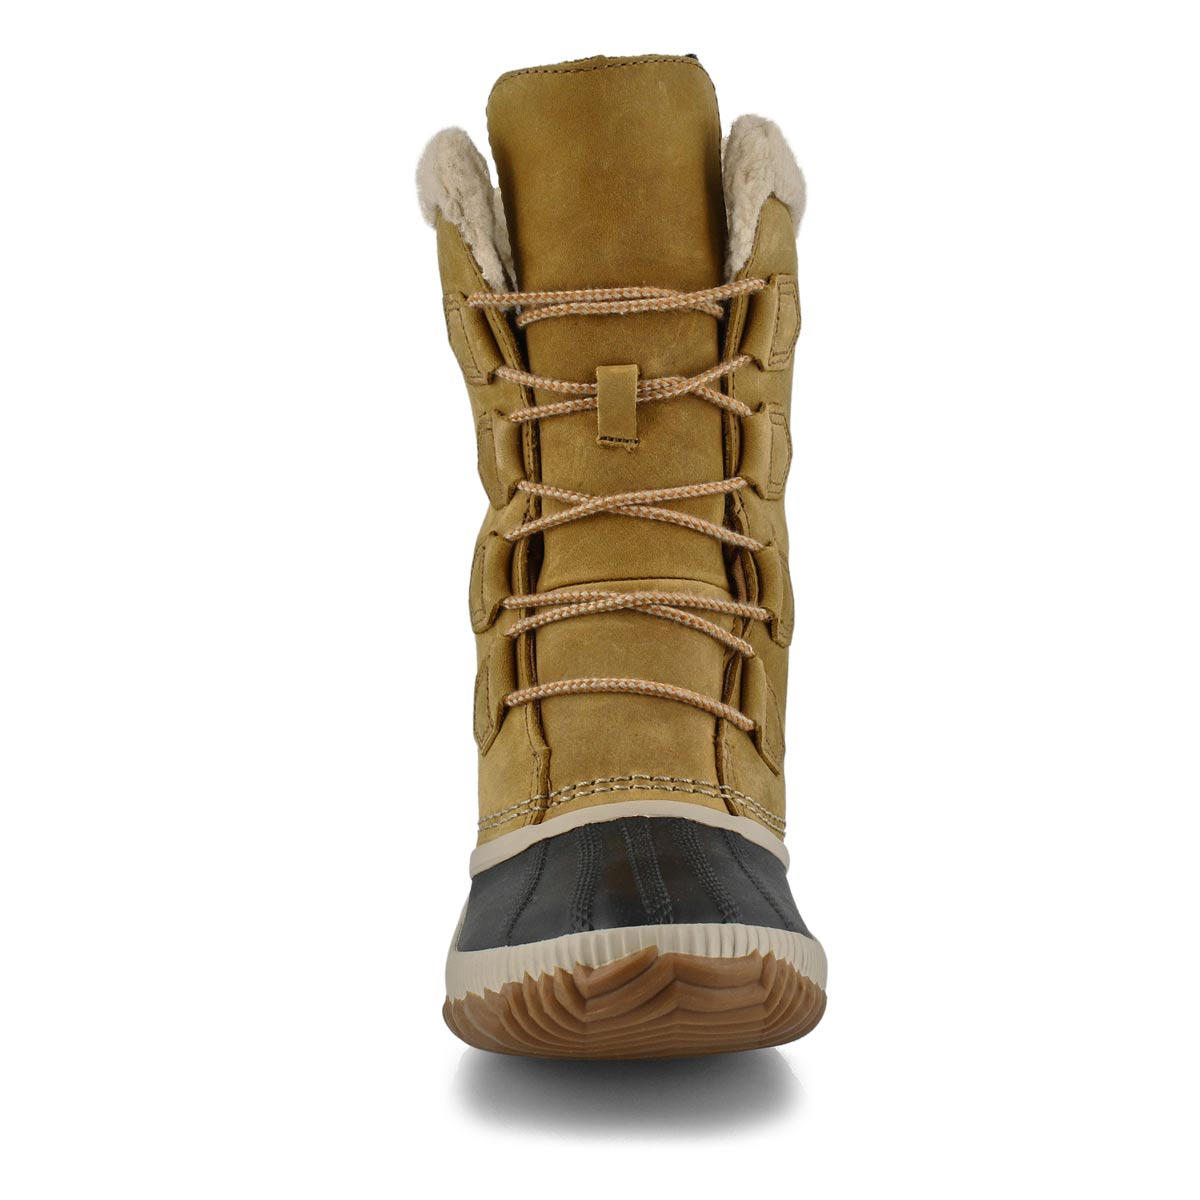 Women's Out'N About Plus Tall Waterproof Boot